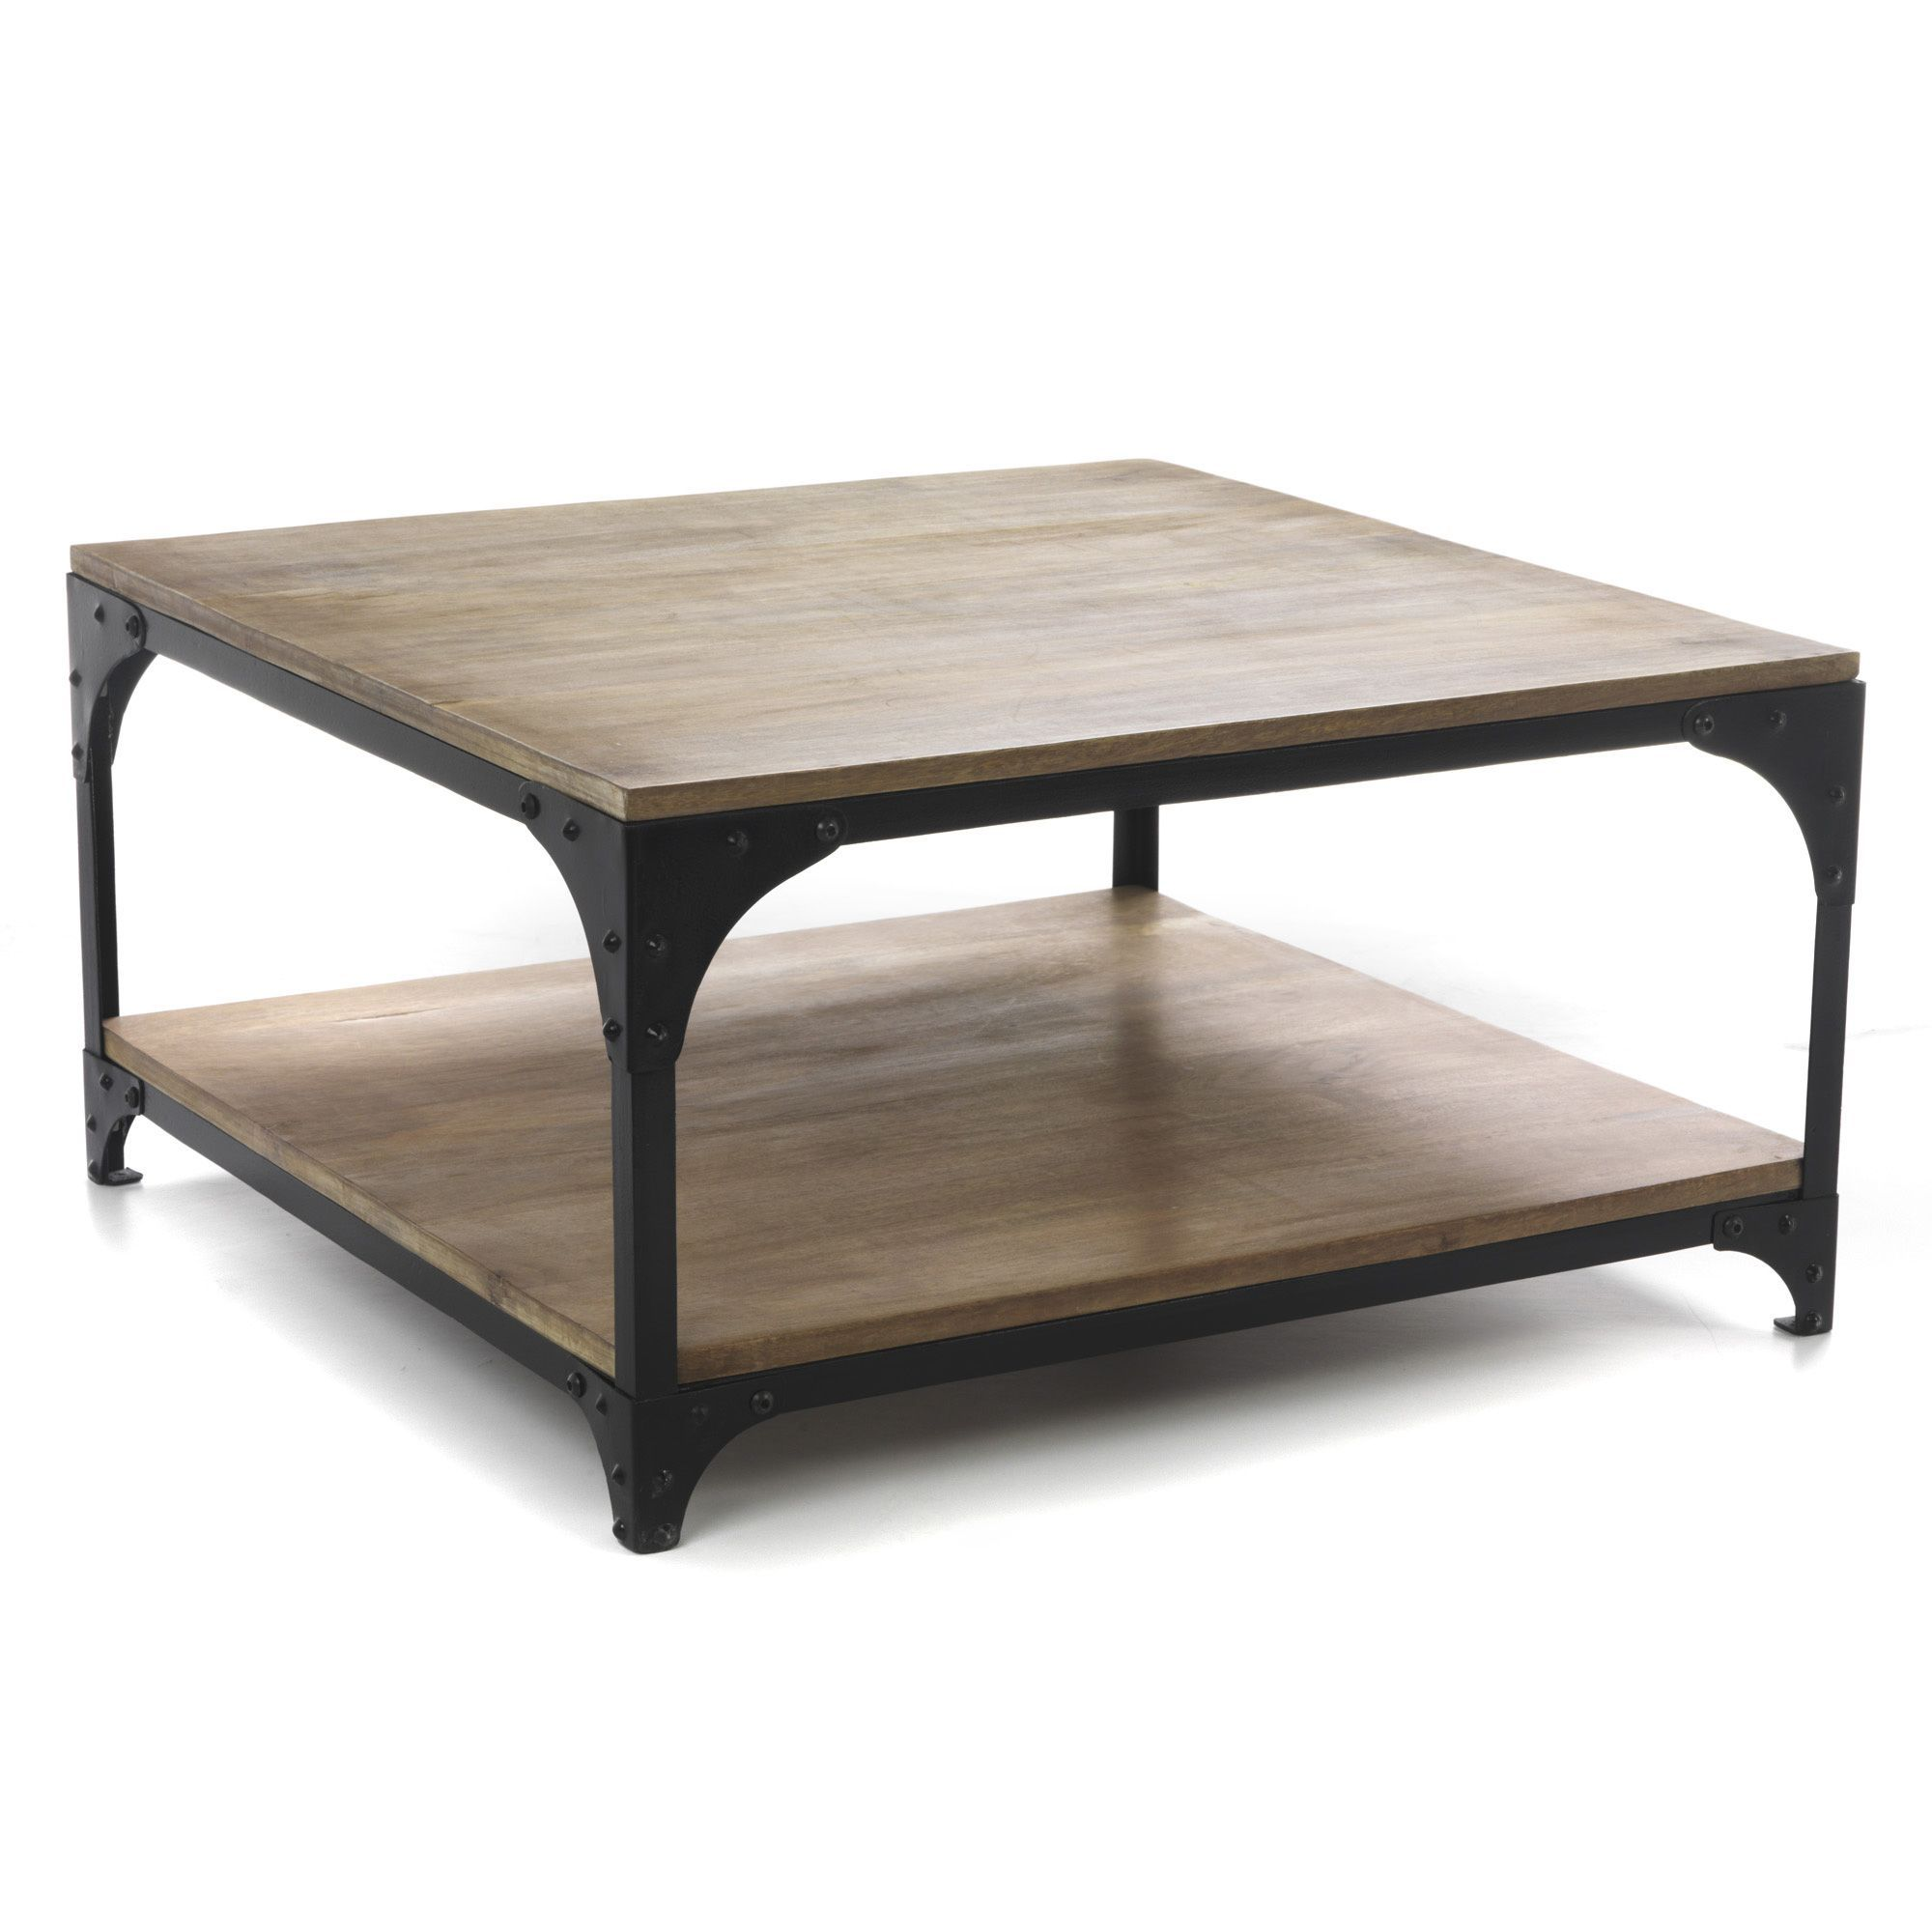 Table basse carr e industrielle naturel new ately les tables basses tab - Table basse verre roulette industrielle ...